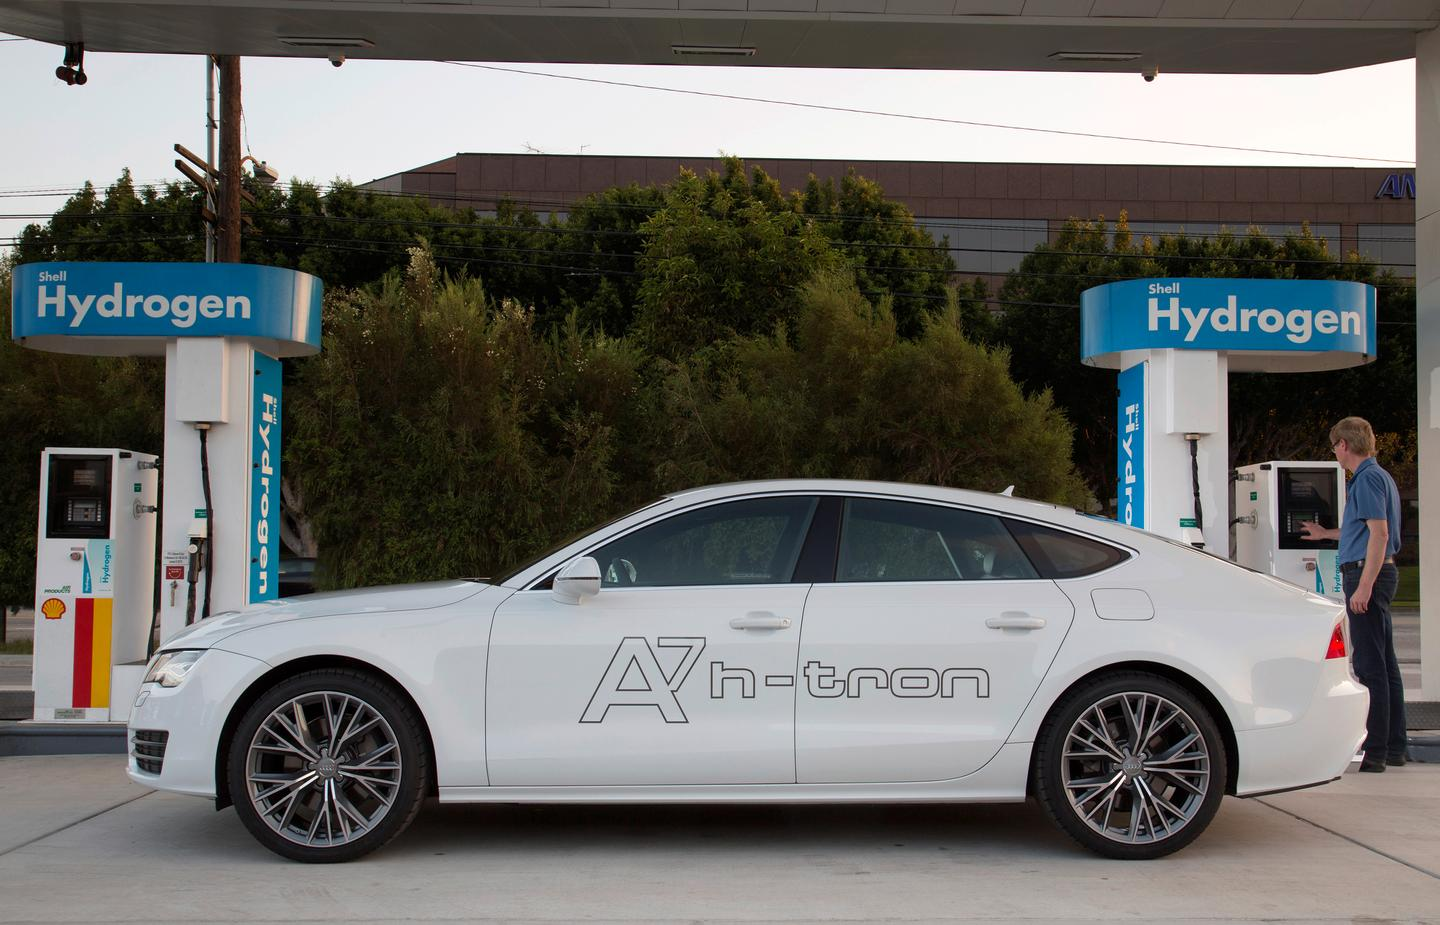 Audi demonstrates its fuel cell technology